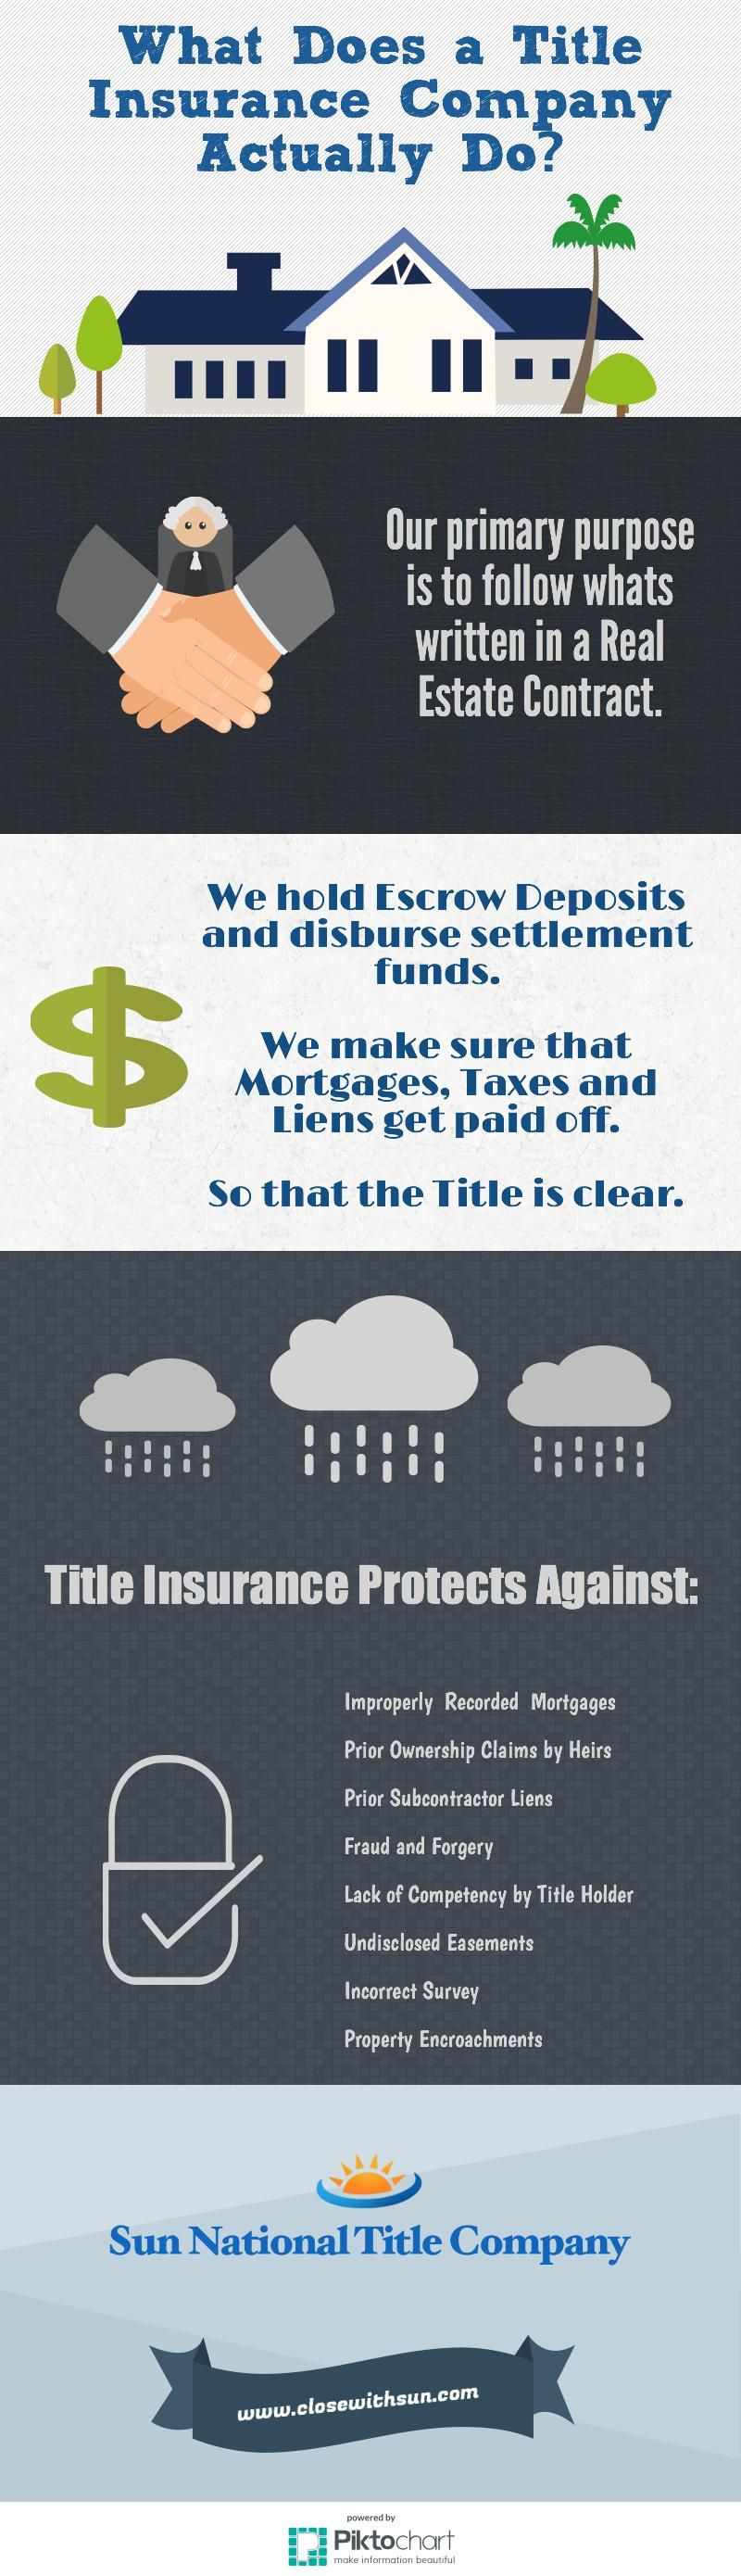 Ft Myers Title Insurance Company Title Insurance Home Insurance